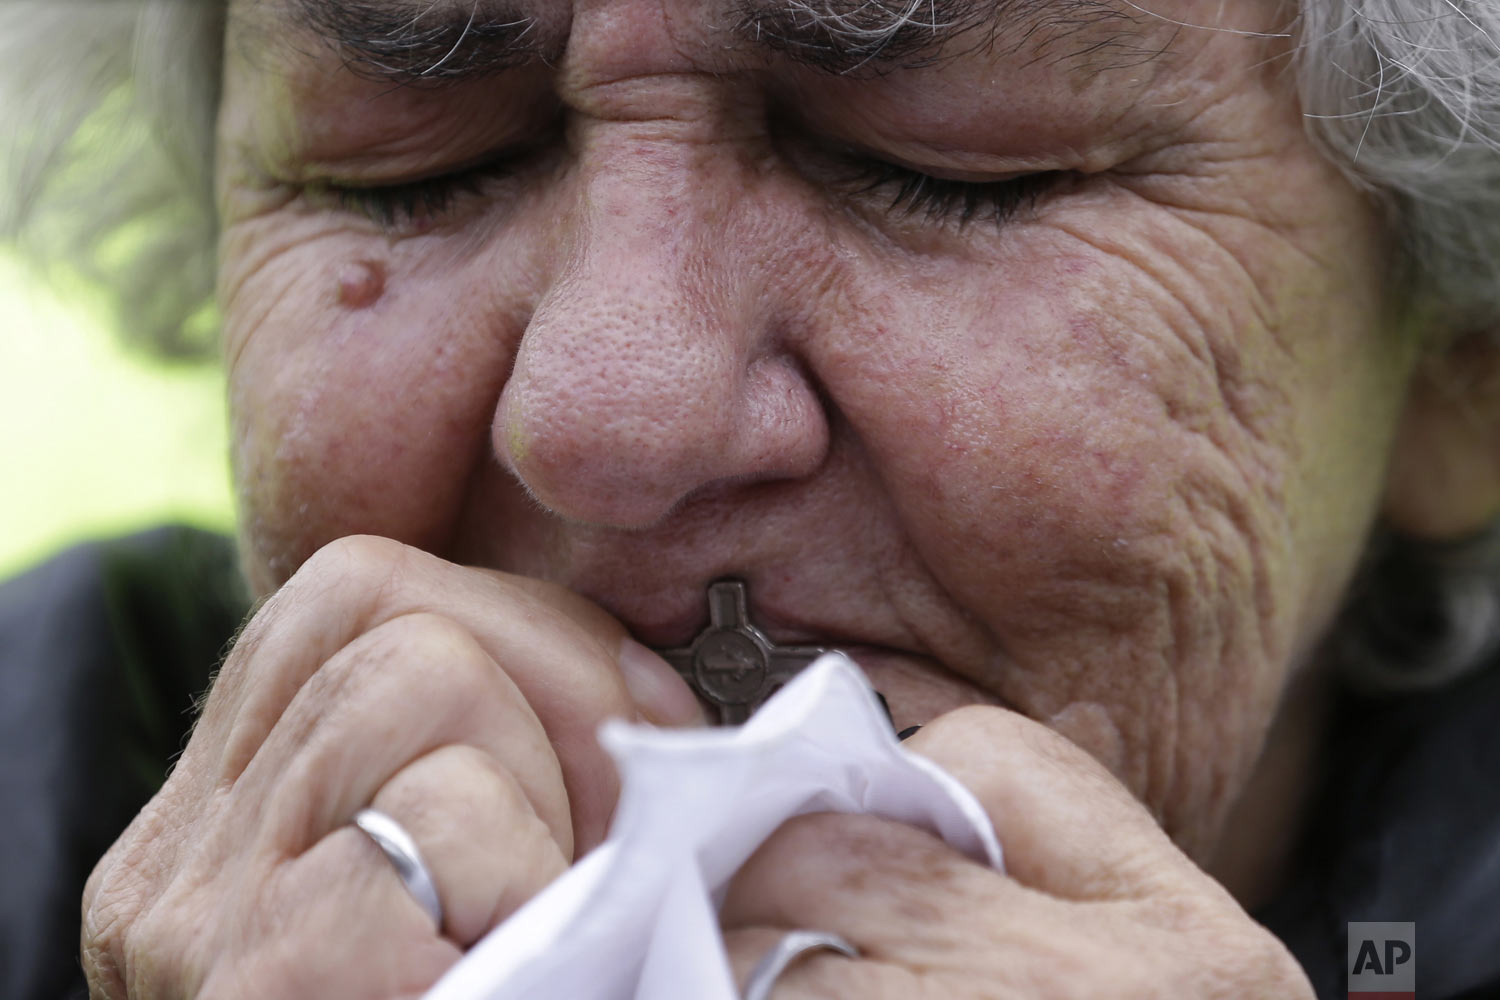 A woman kisses a cross during a rally to repudiate terrorism in Bolivar Square in Bogota, Colombia, Sunday, Jan. 20, 2019. The National Liberation Army claimed responsibility Monday for the deadly car bombing, stating the attack against a military installation was a legitimate response to the armed forces' bombing of a guerrilla camp during a recent unilateral ceasefire. (AP Photo/Fernando Vergara)